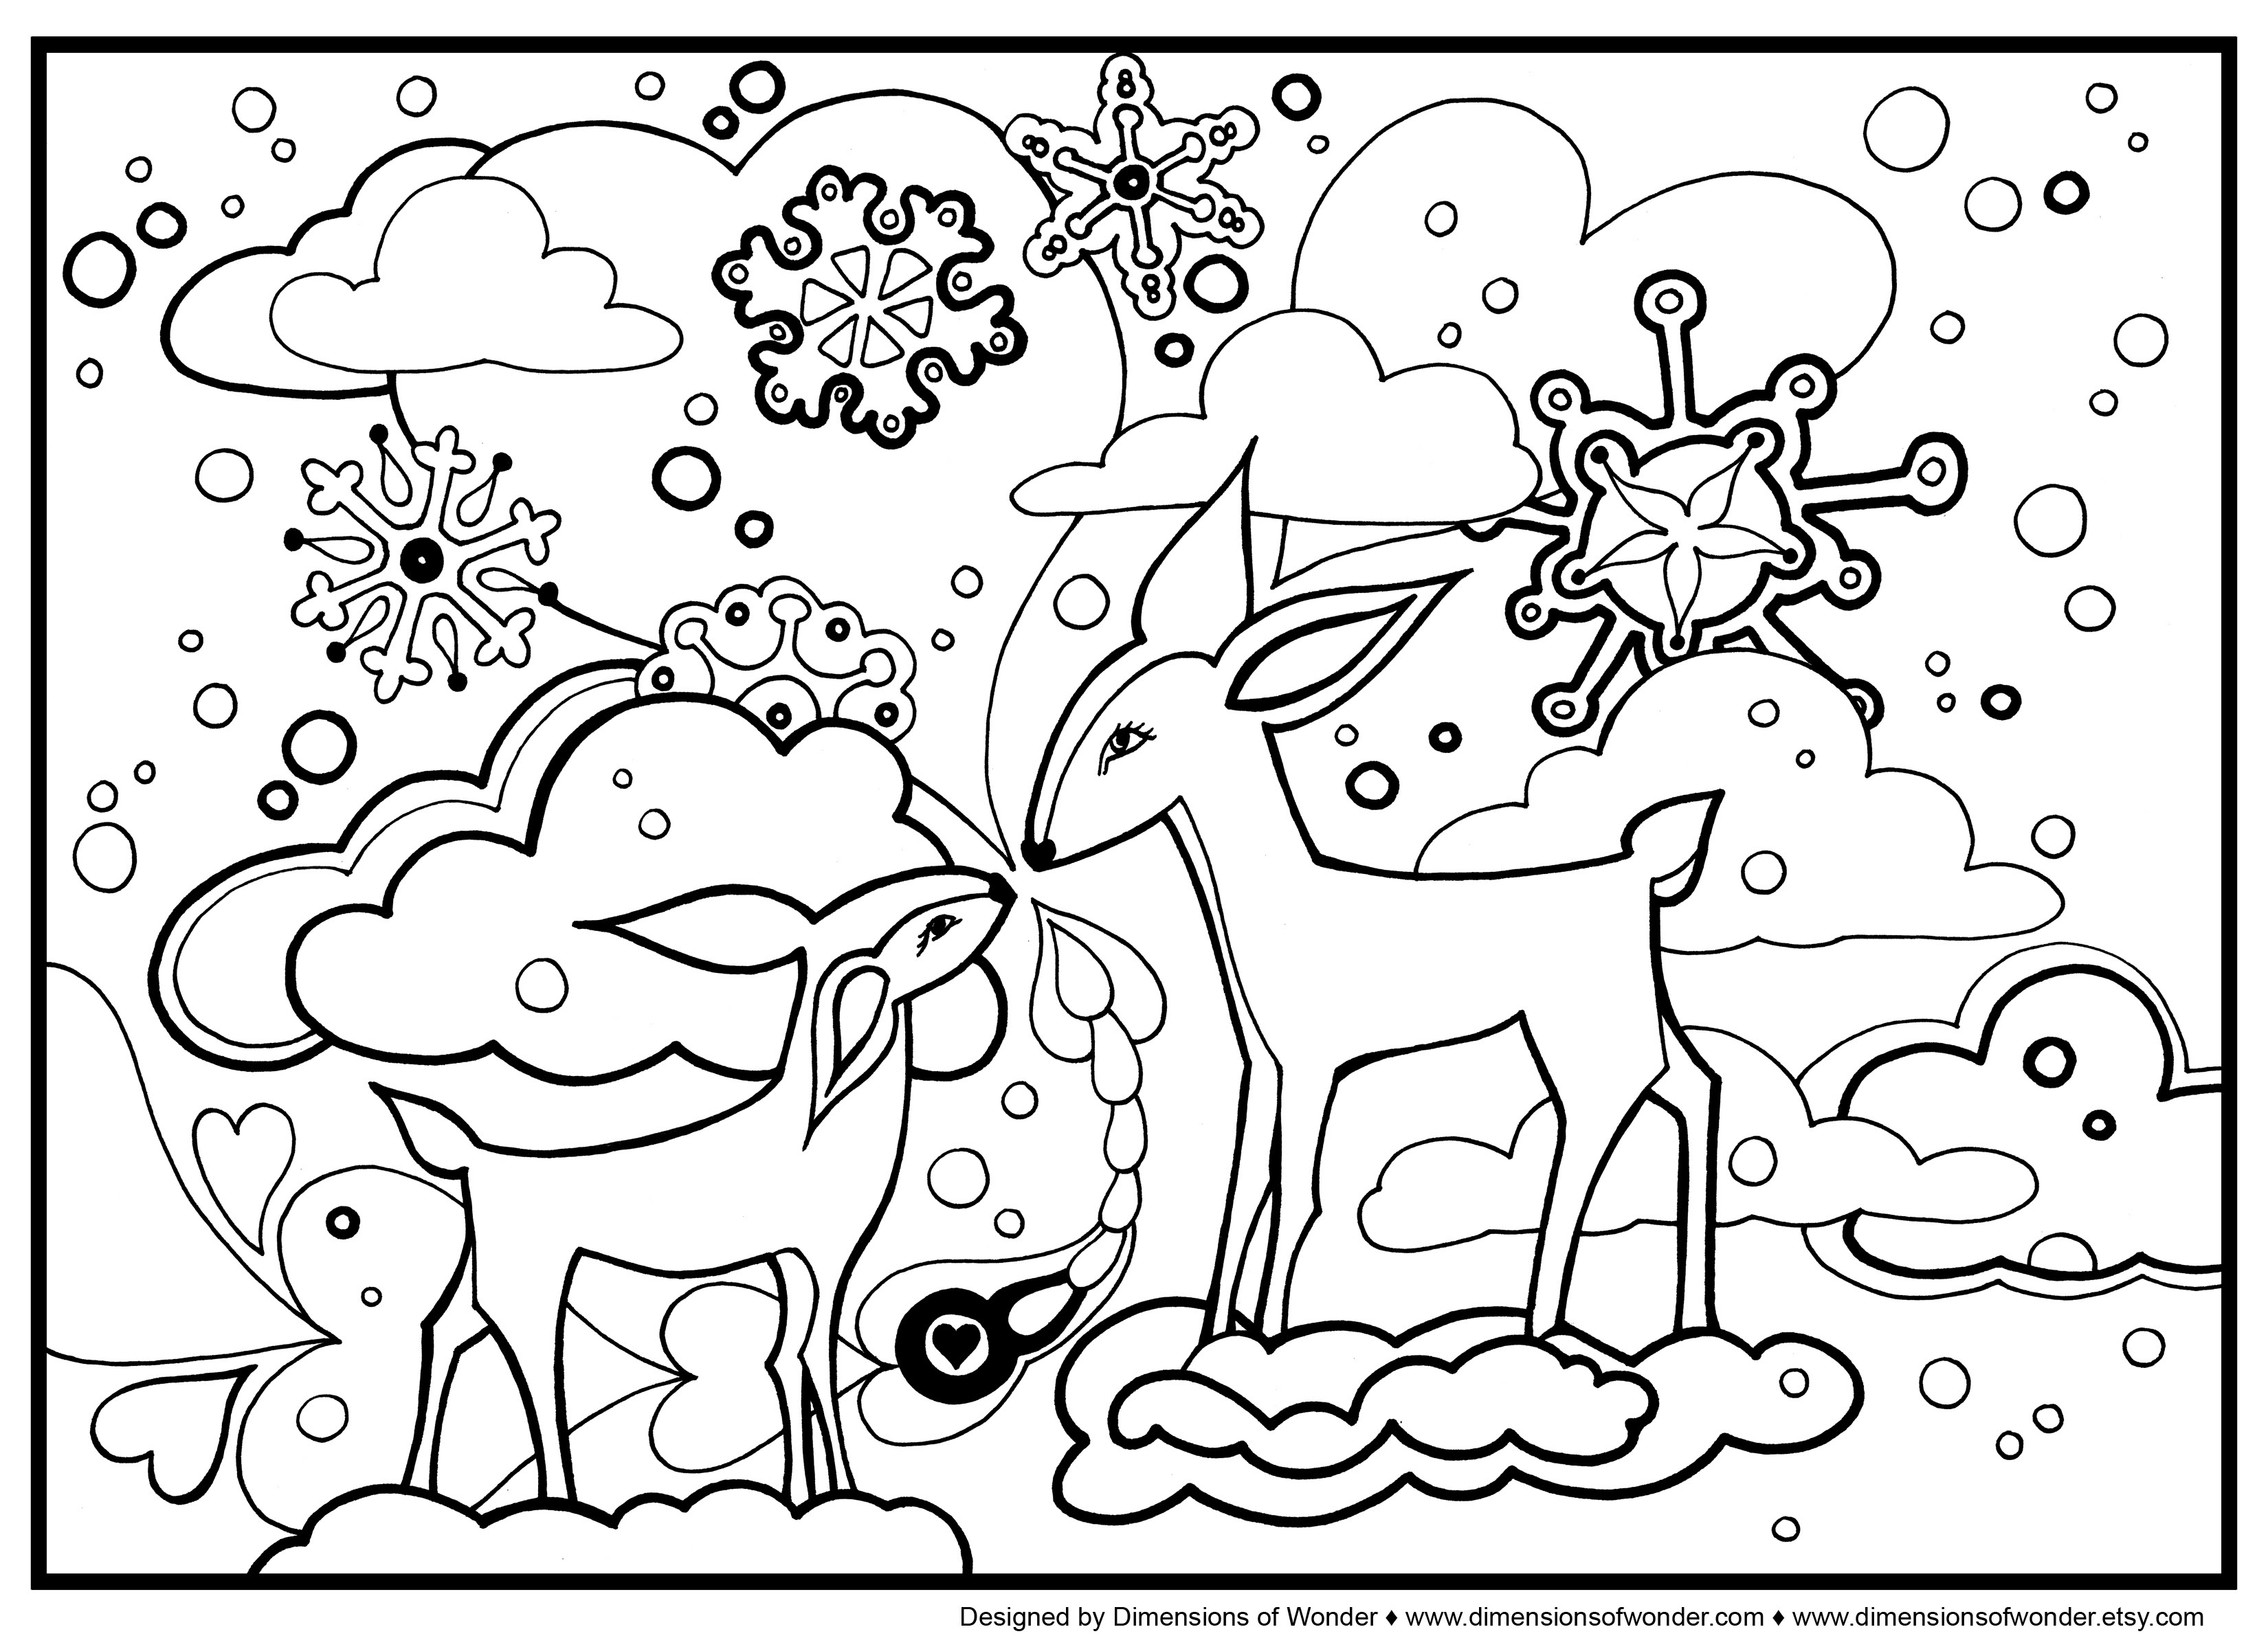 870 Top Crayola Free Coloring Pages Winter Images & Pictures In HD